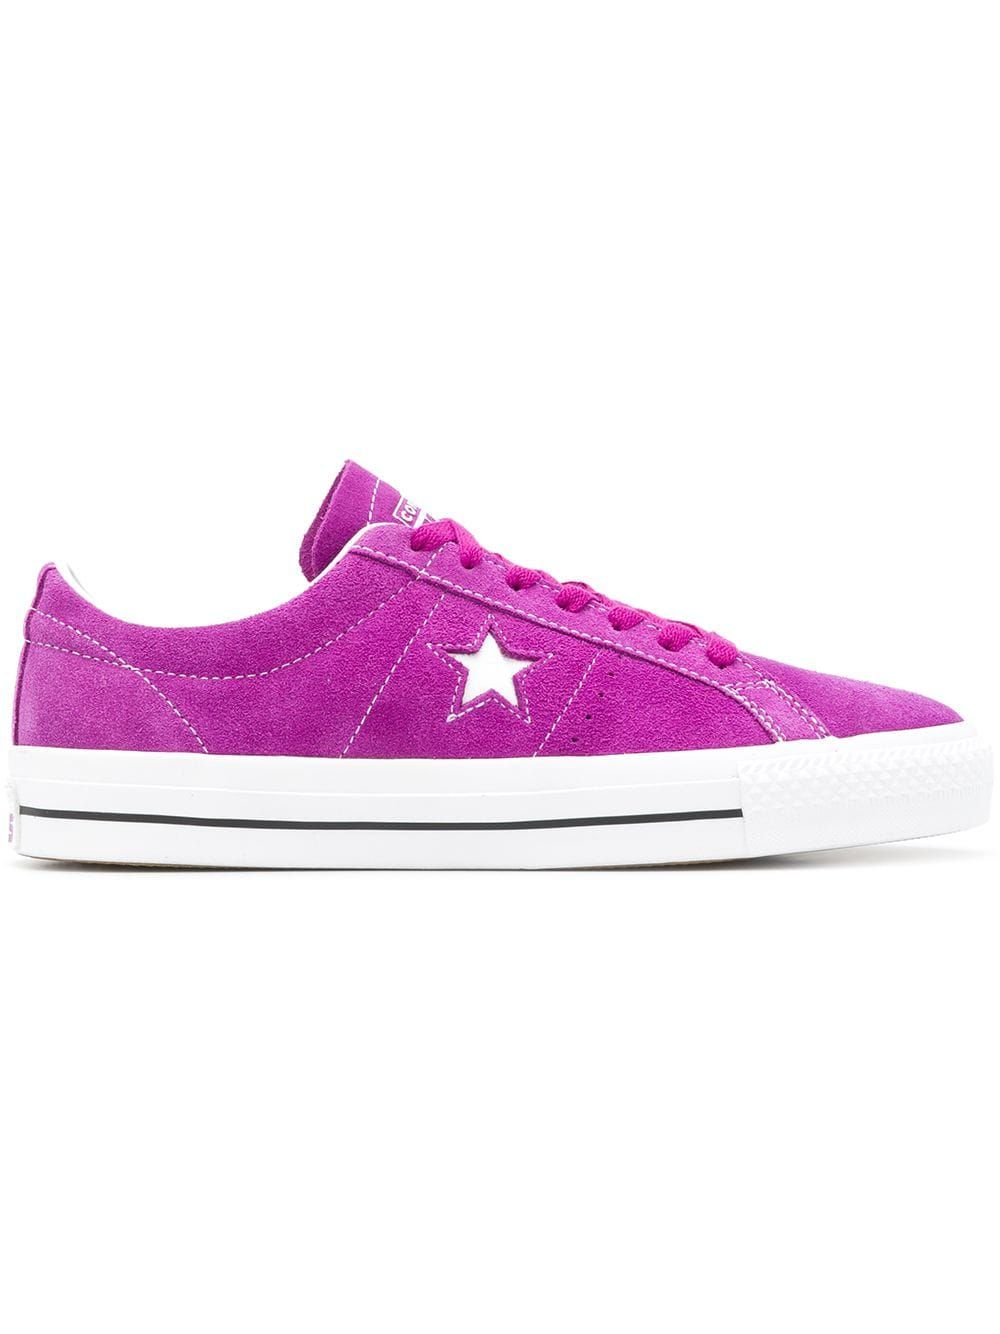 29d1e3444ea0eb CONVERSE CONVERSE ONE STAR PRO OX TRAINERS - PURPLE.  converse  shoes